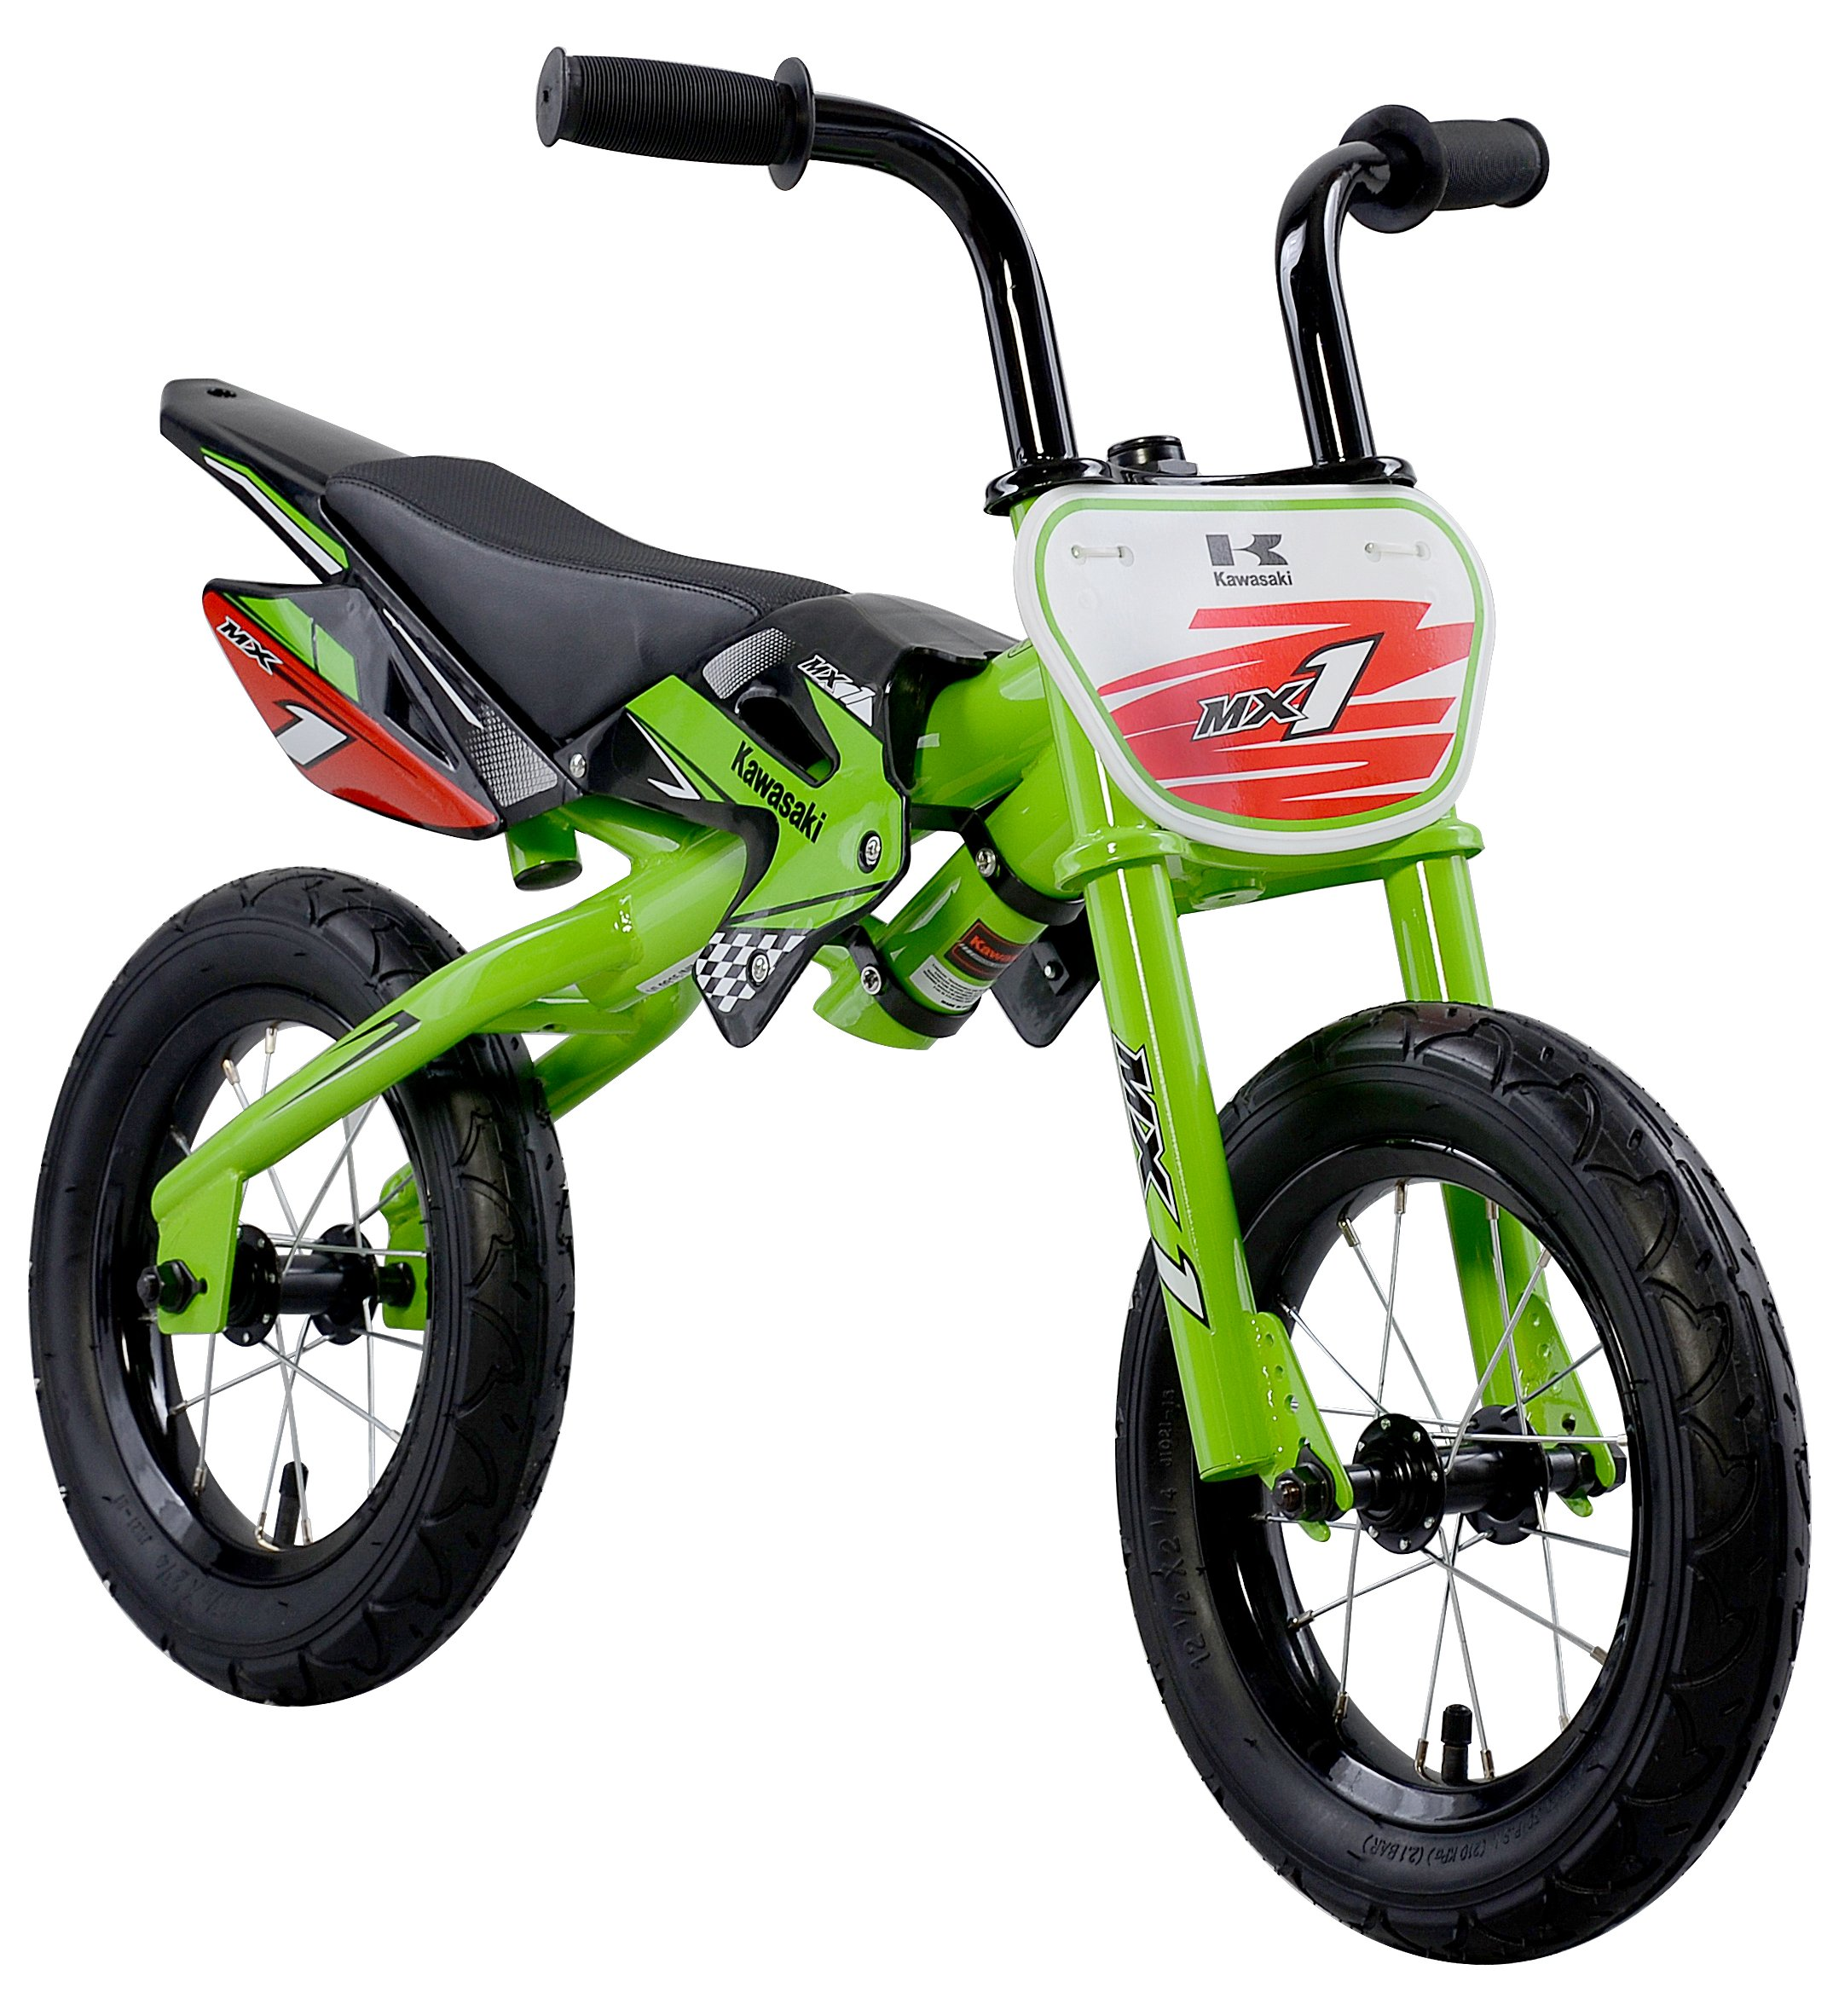 Kawasaki MX1 Green Balance Running Bike